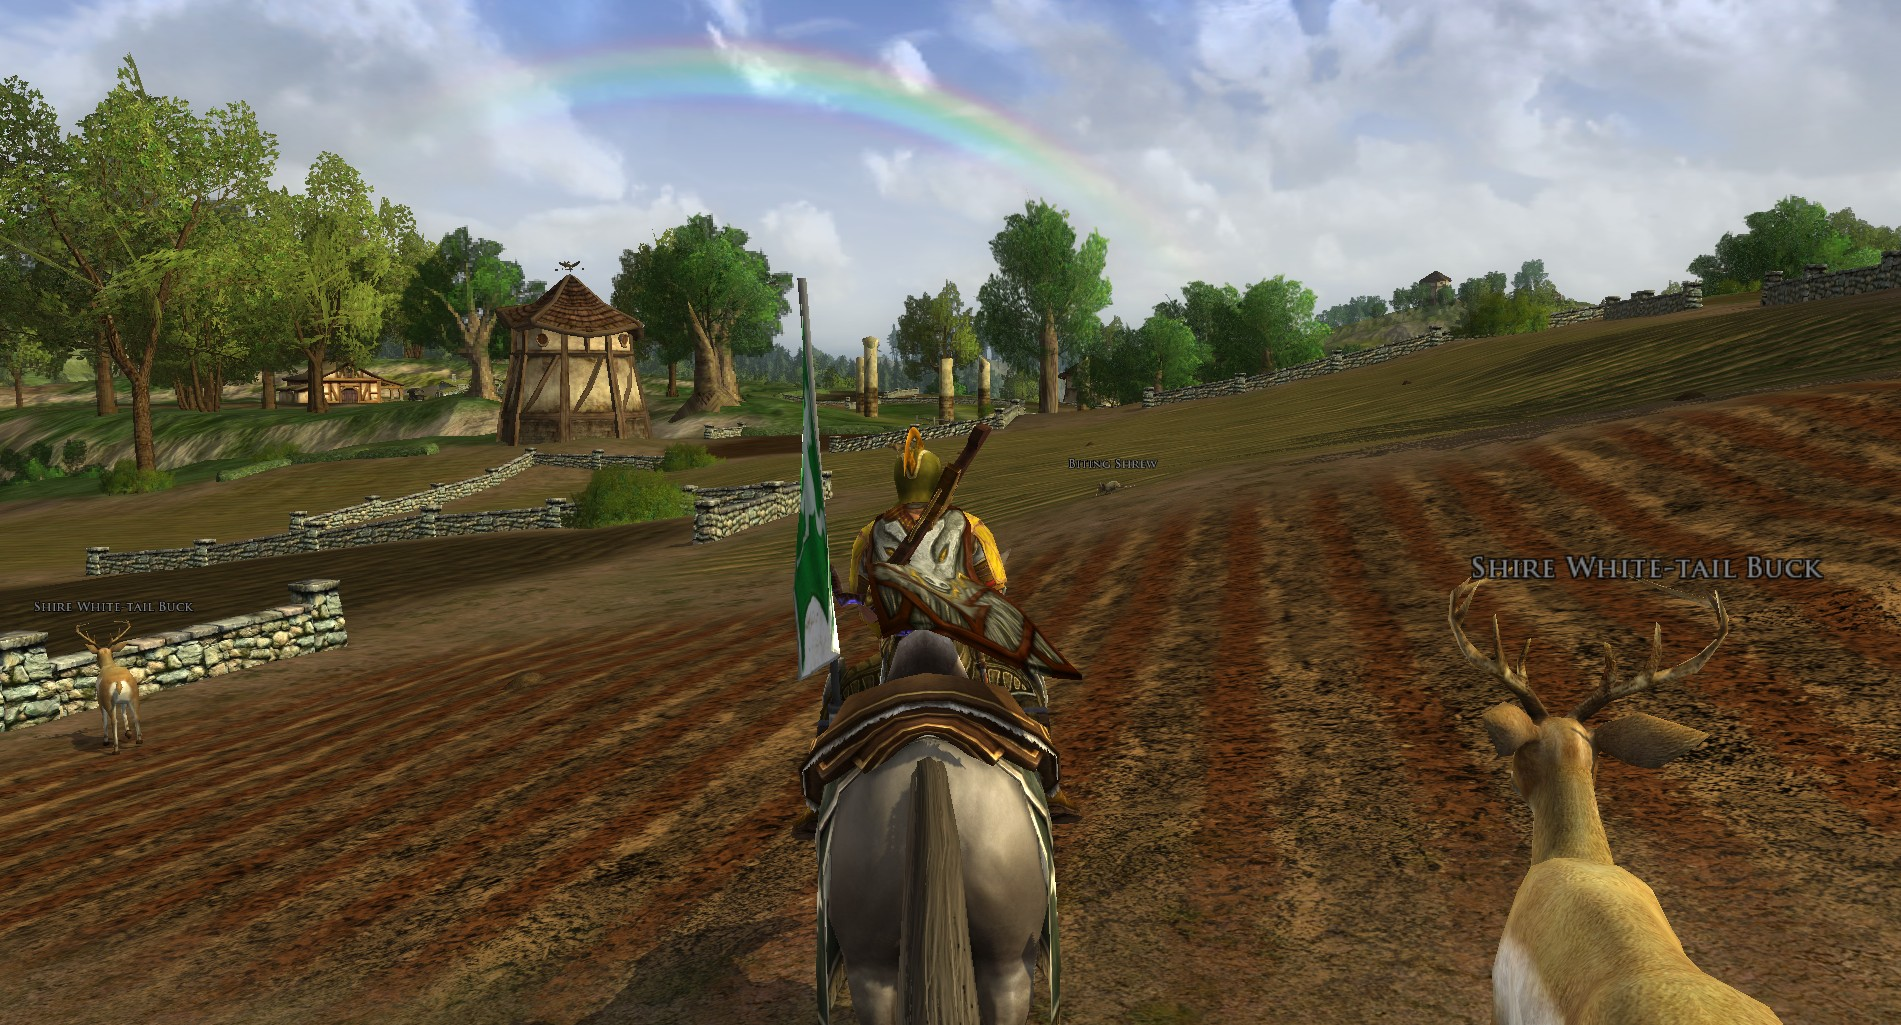 Rainbow over the Shire